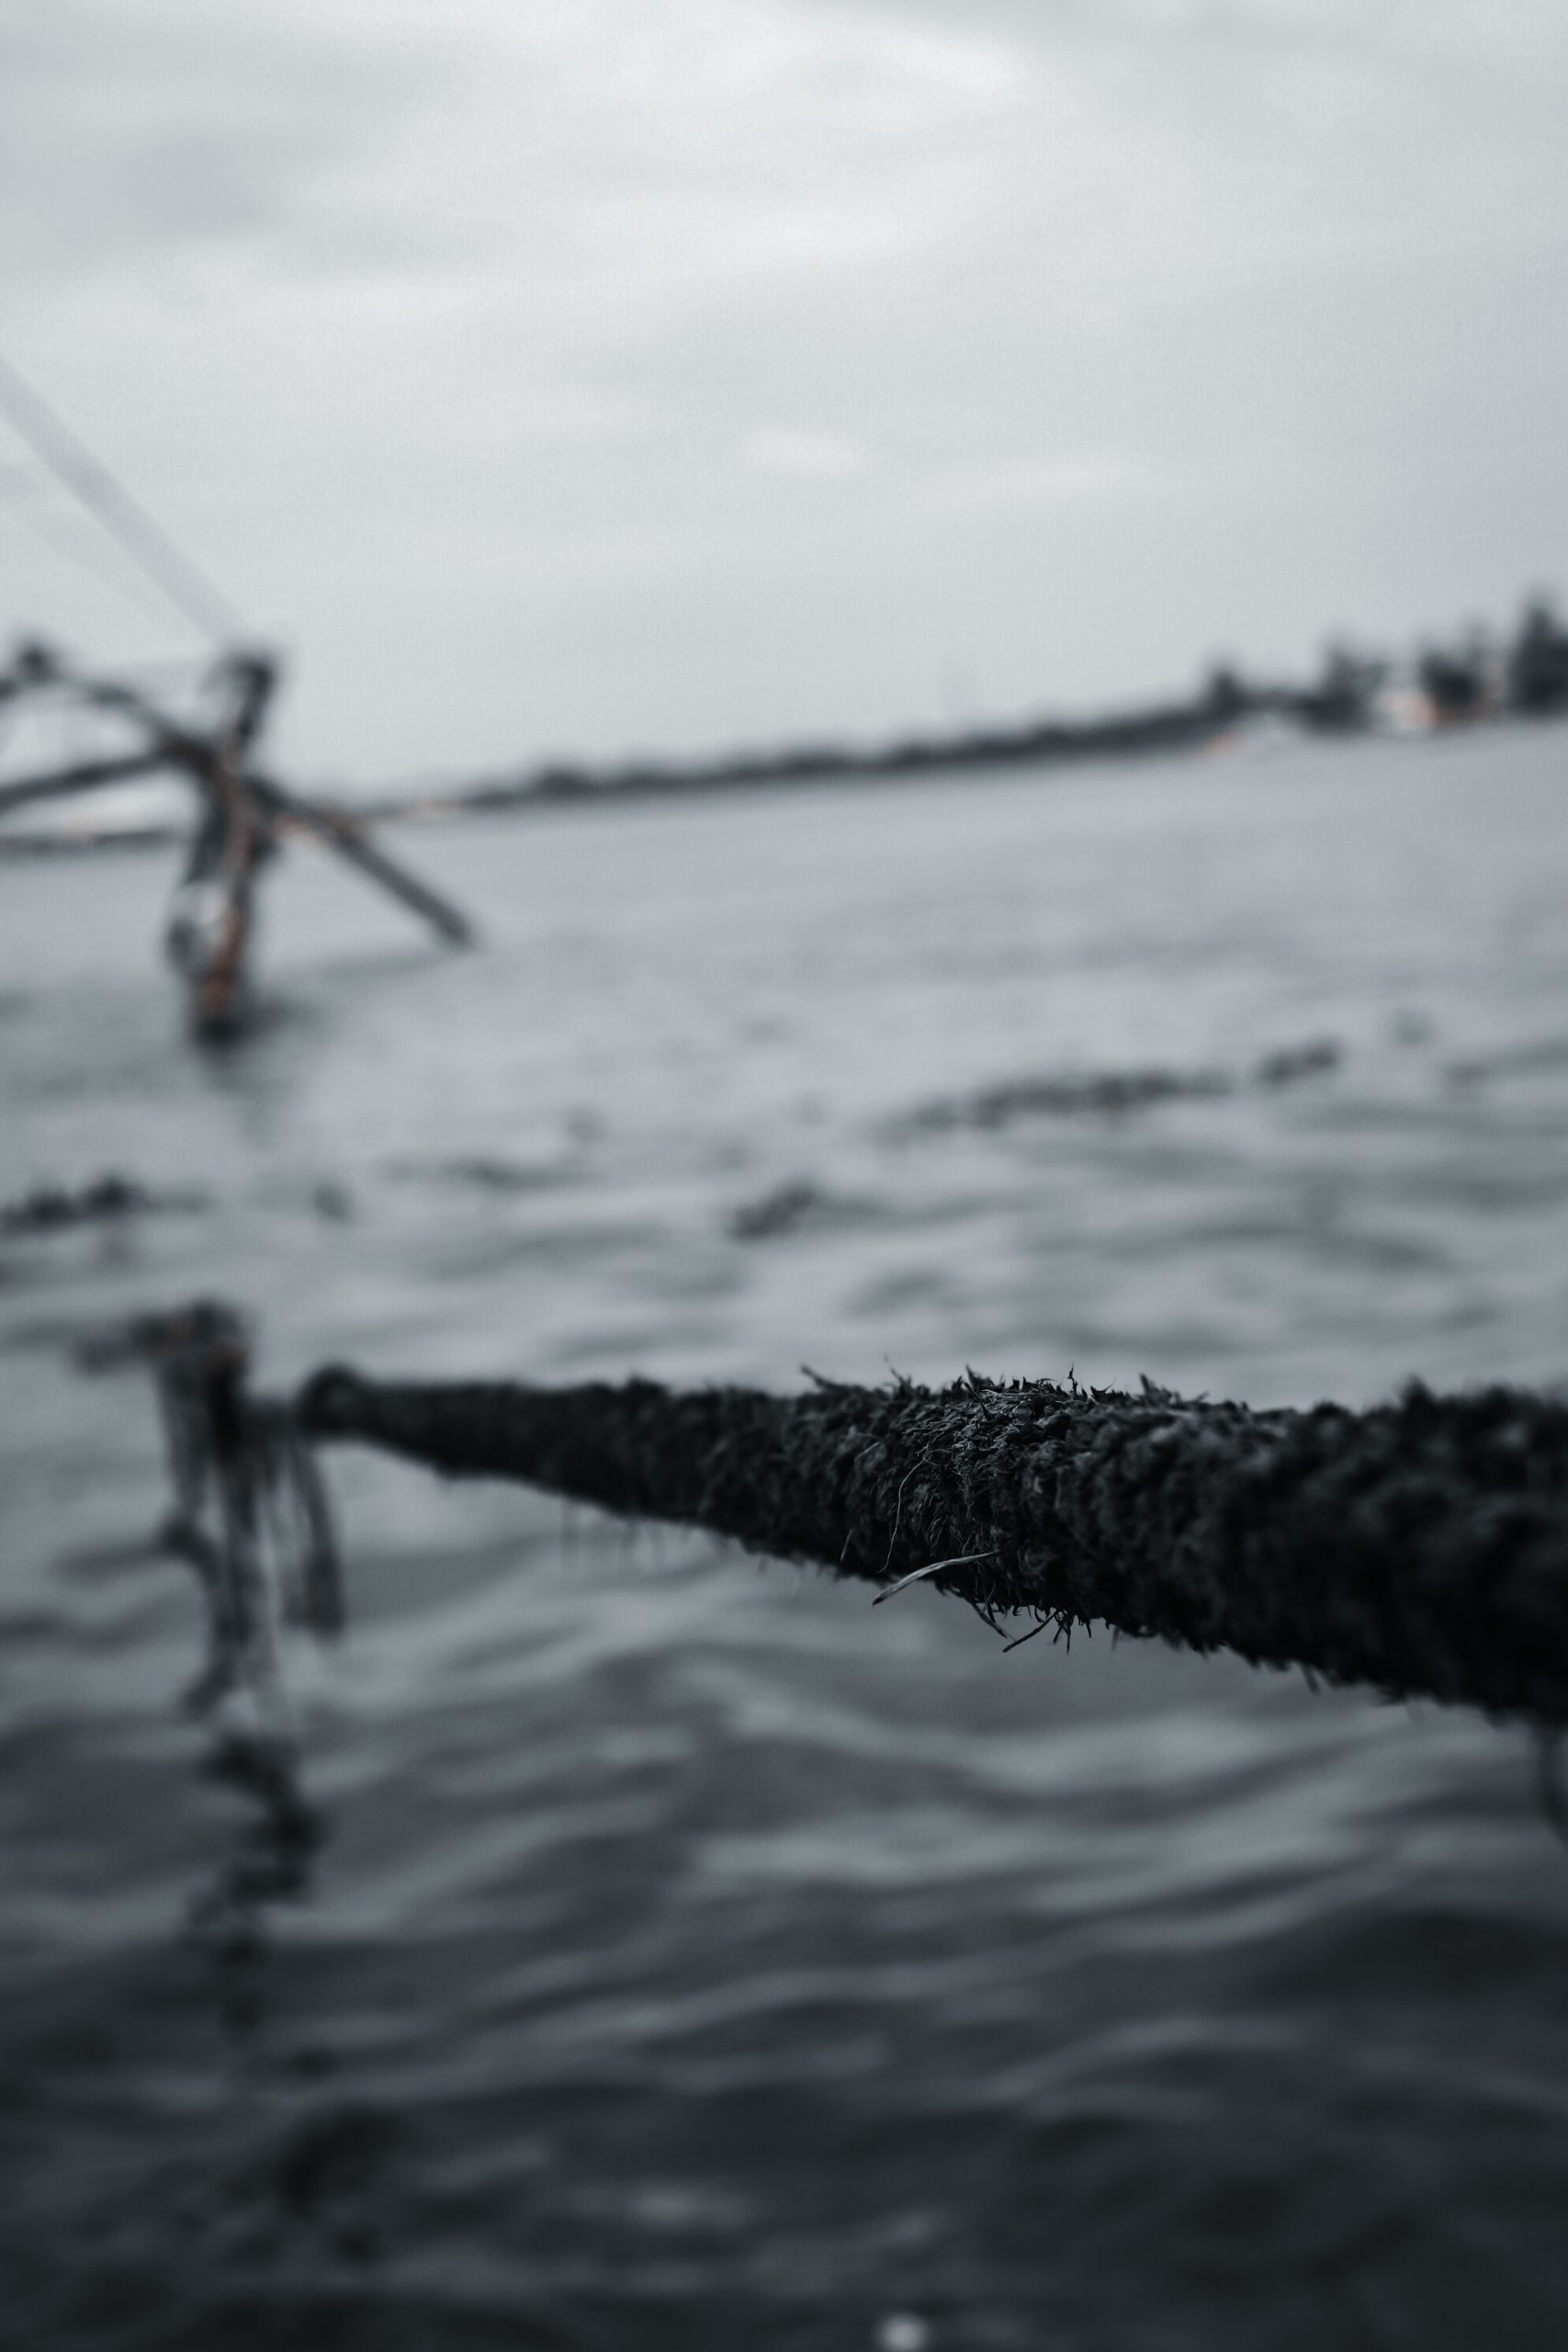 A rope and water